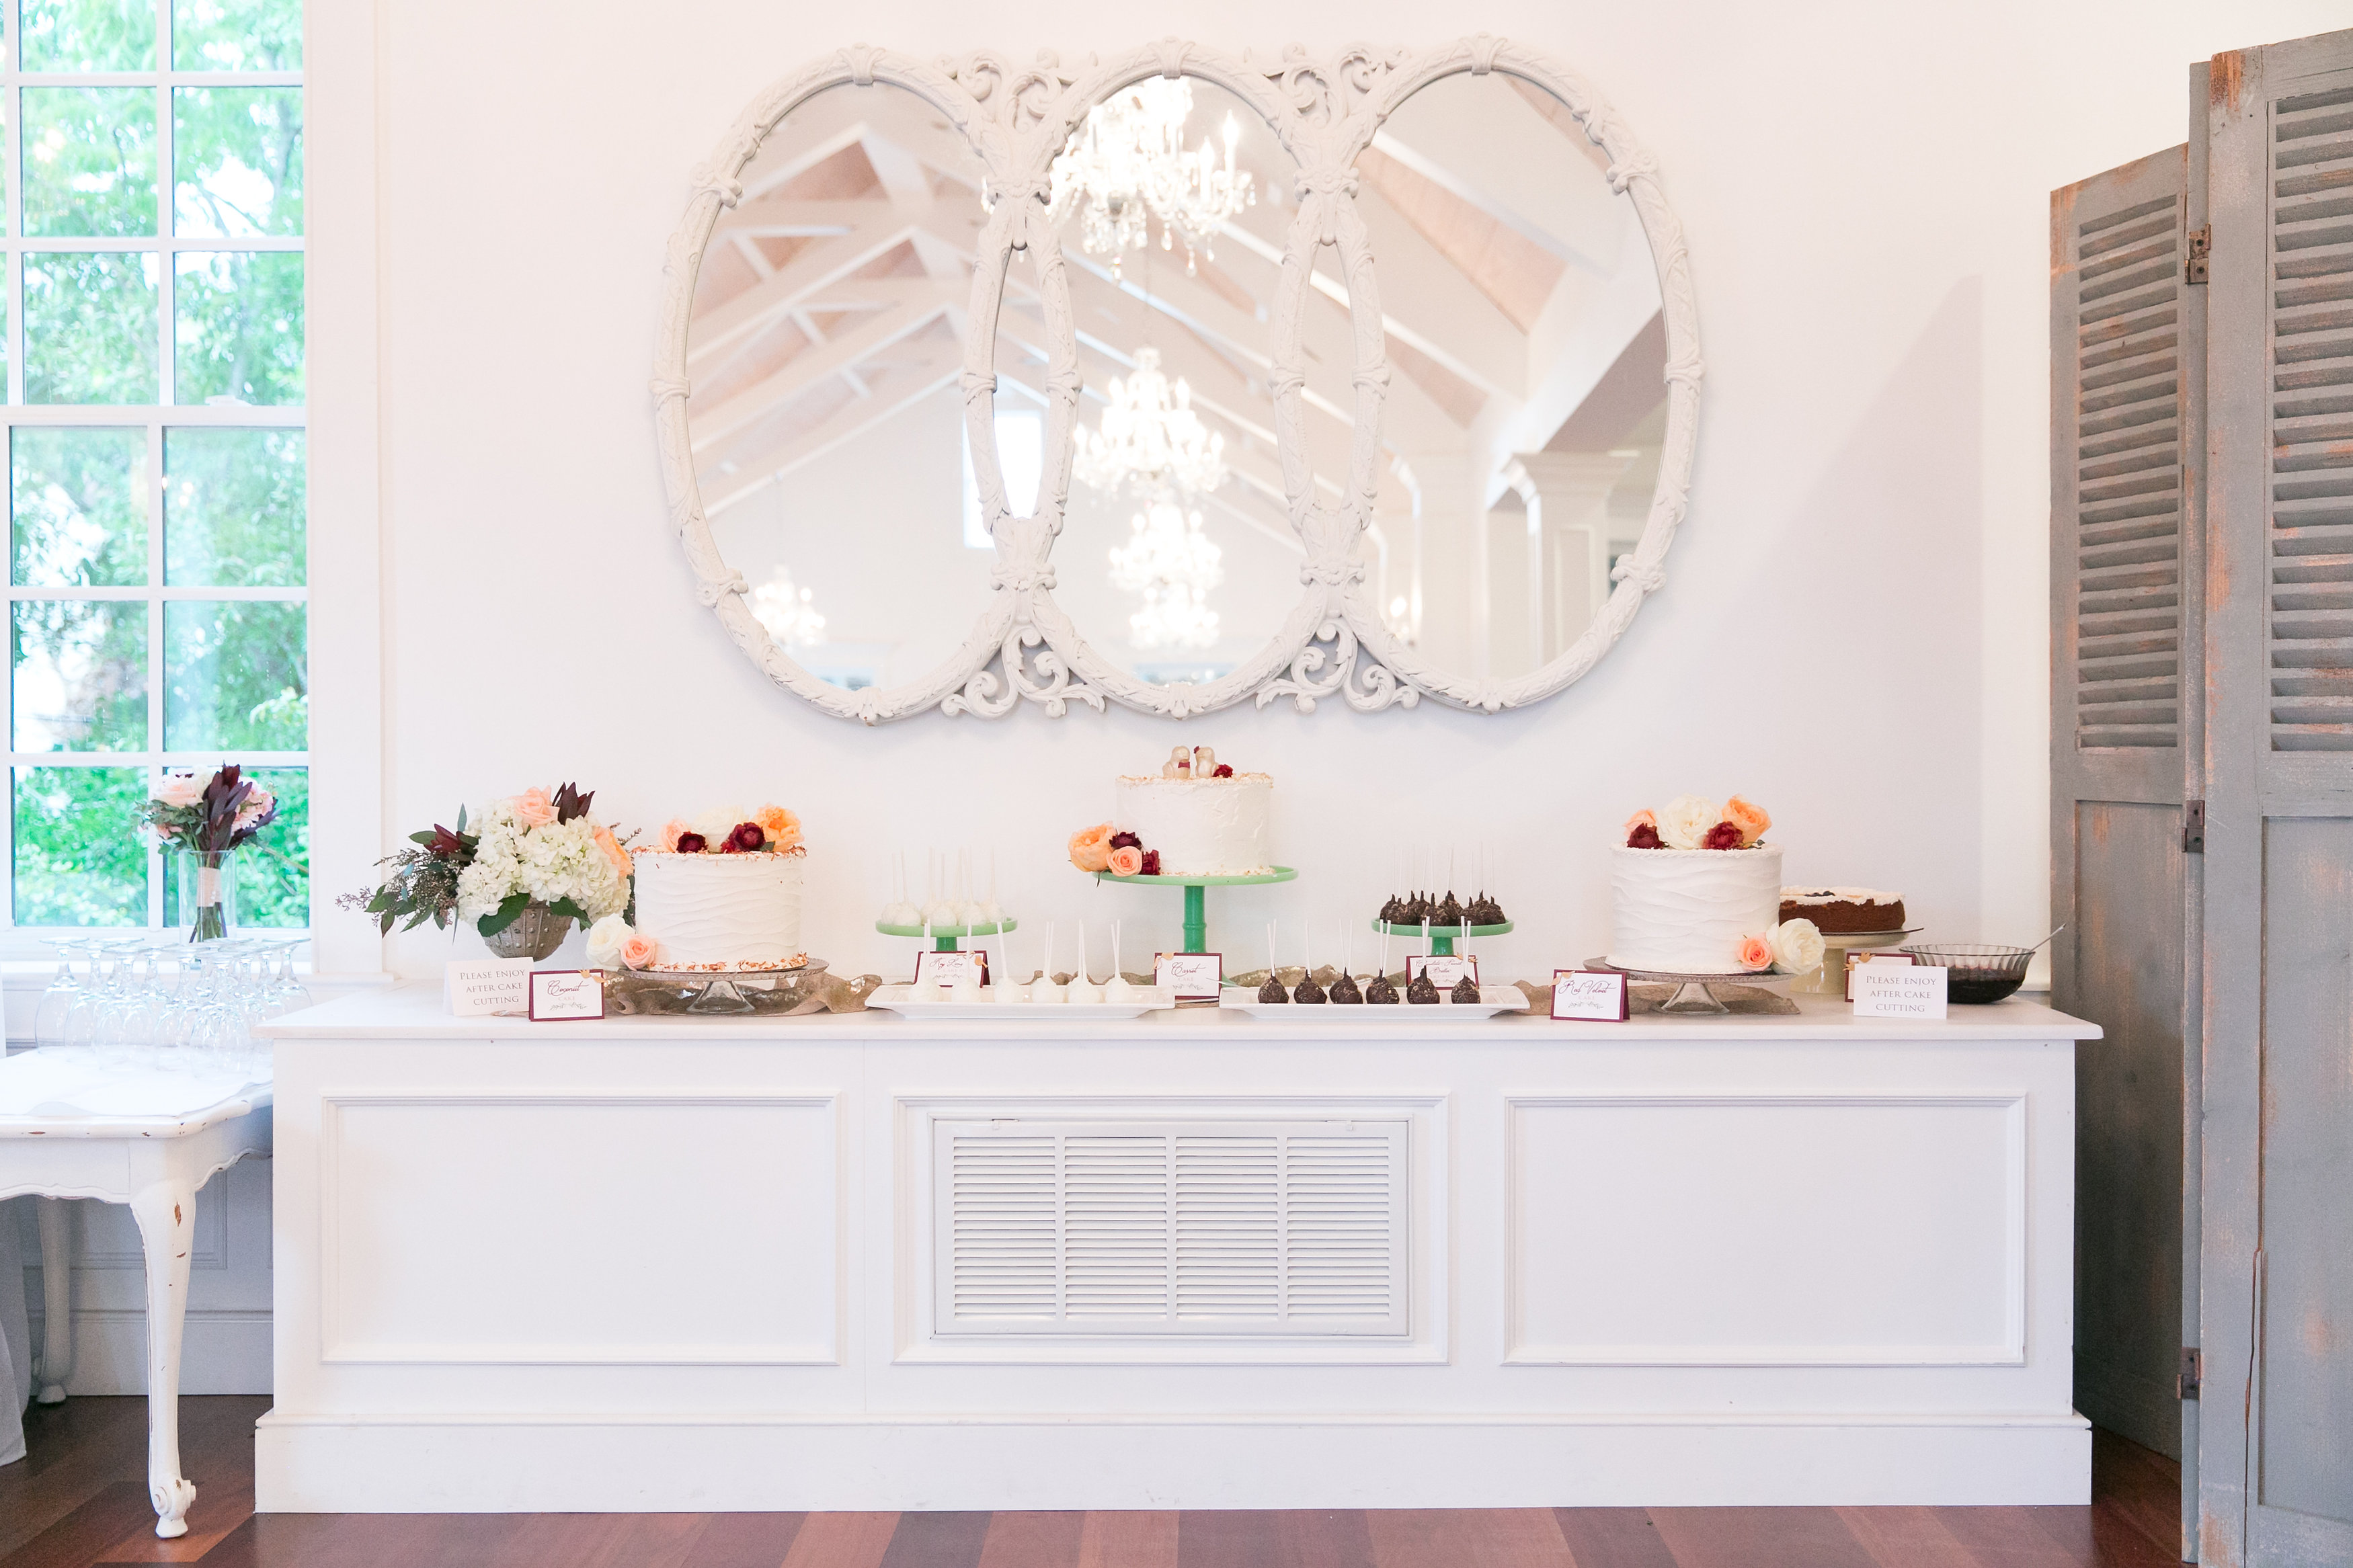 St-Augustine-Wedding-Villa-Blanca-White-Room-Cake-Display